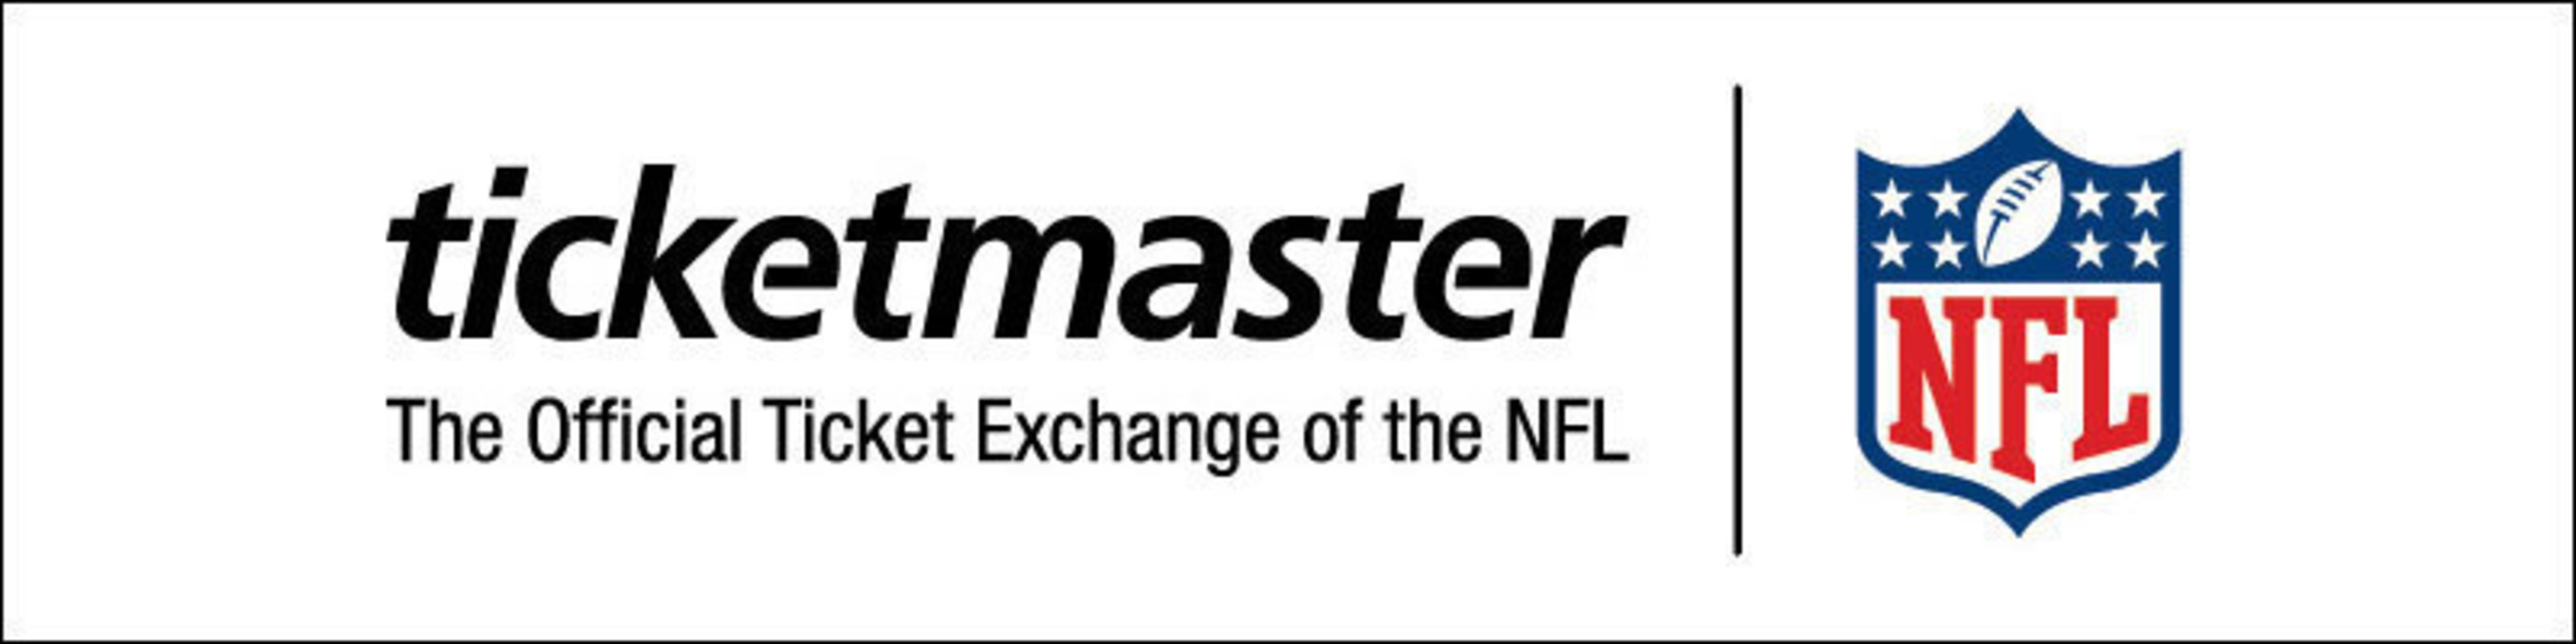 a8a7c062 Hall Of Fame Quarterback Troy Aikman Joins NFL Ticket Exchange And ...